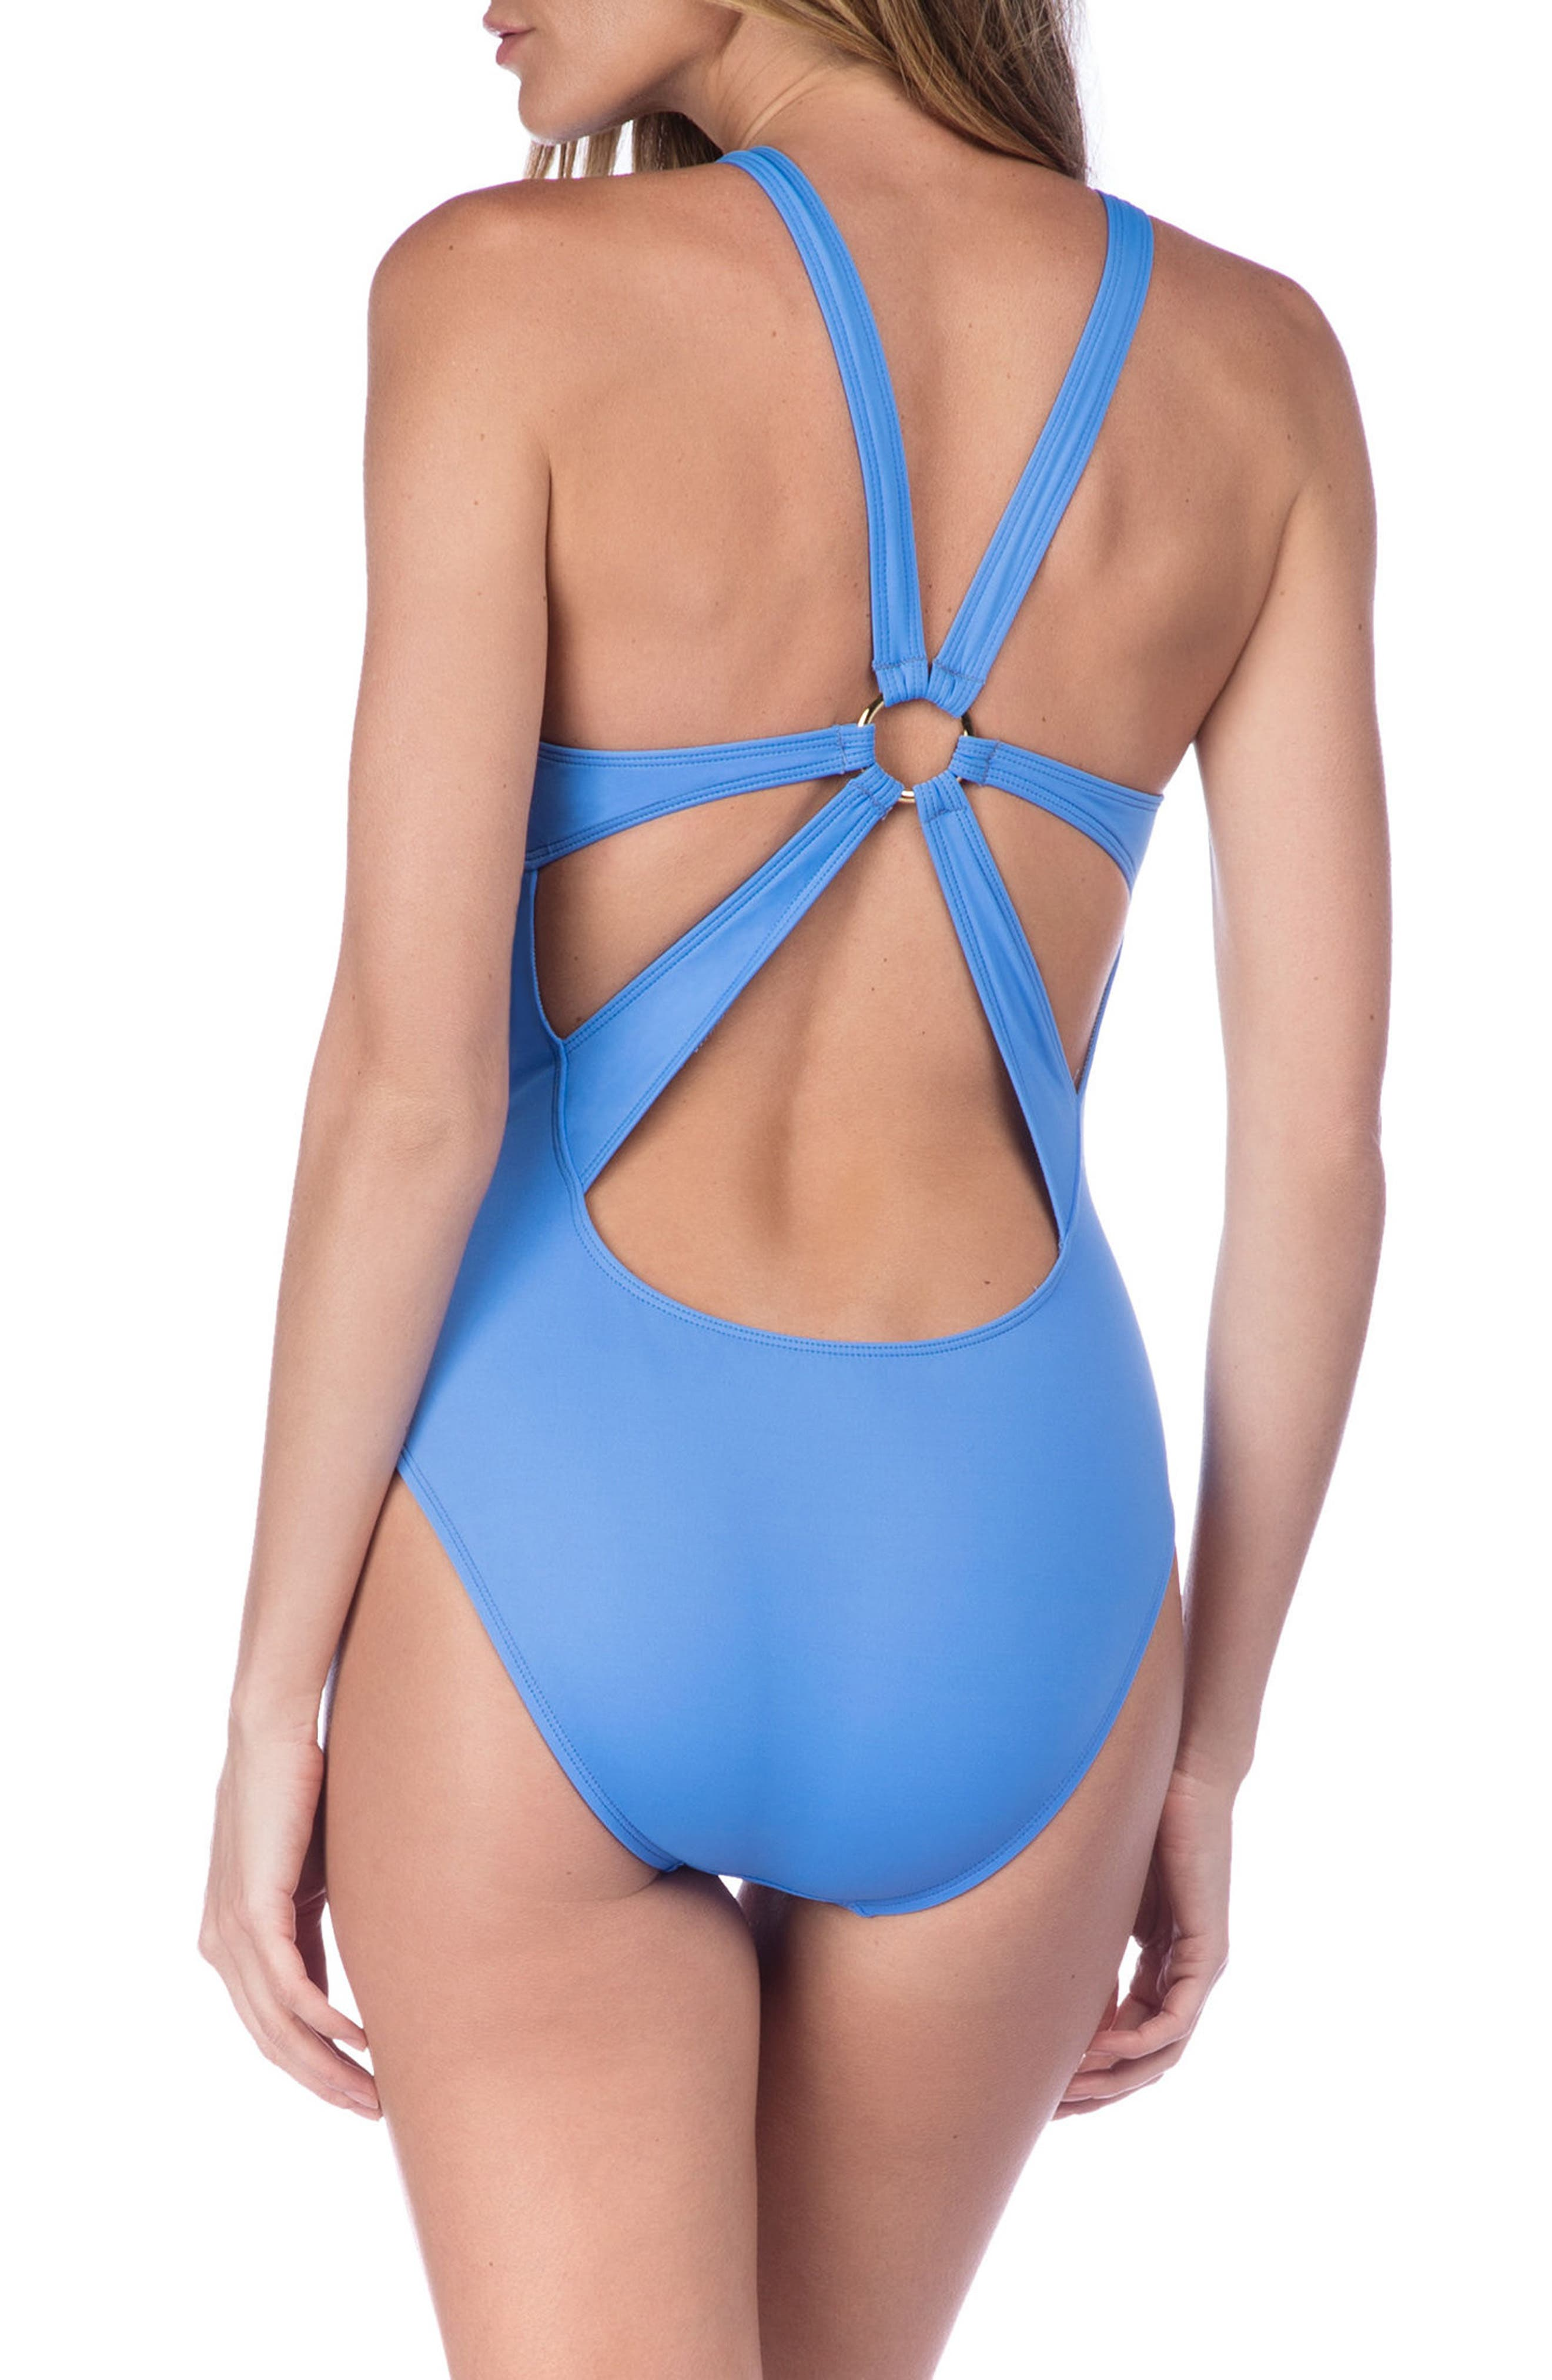 Deco Studded One-Piece Swimsuit,                             Alternate thumbnail 2, color,                             400